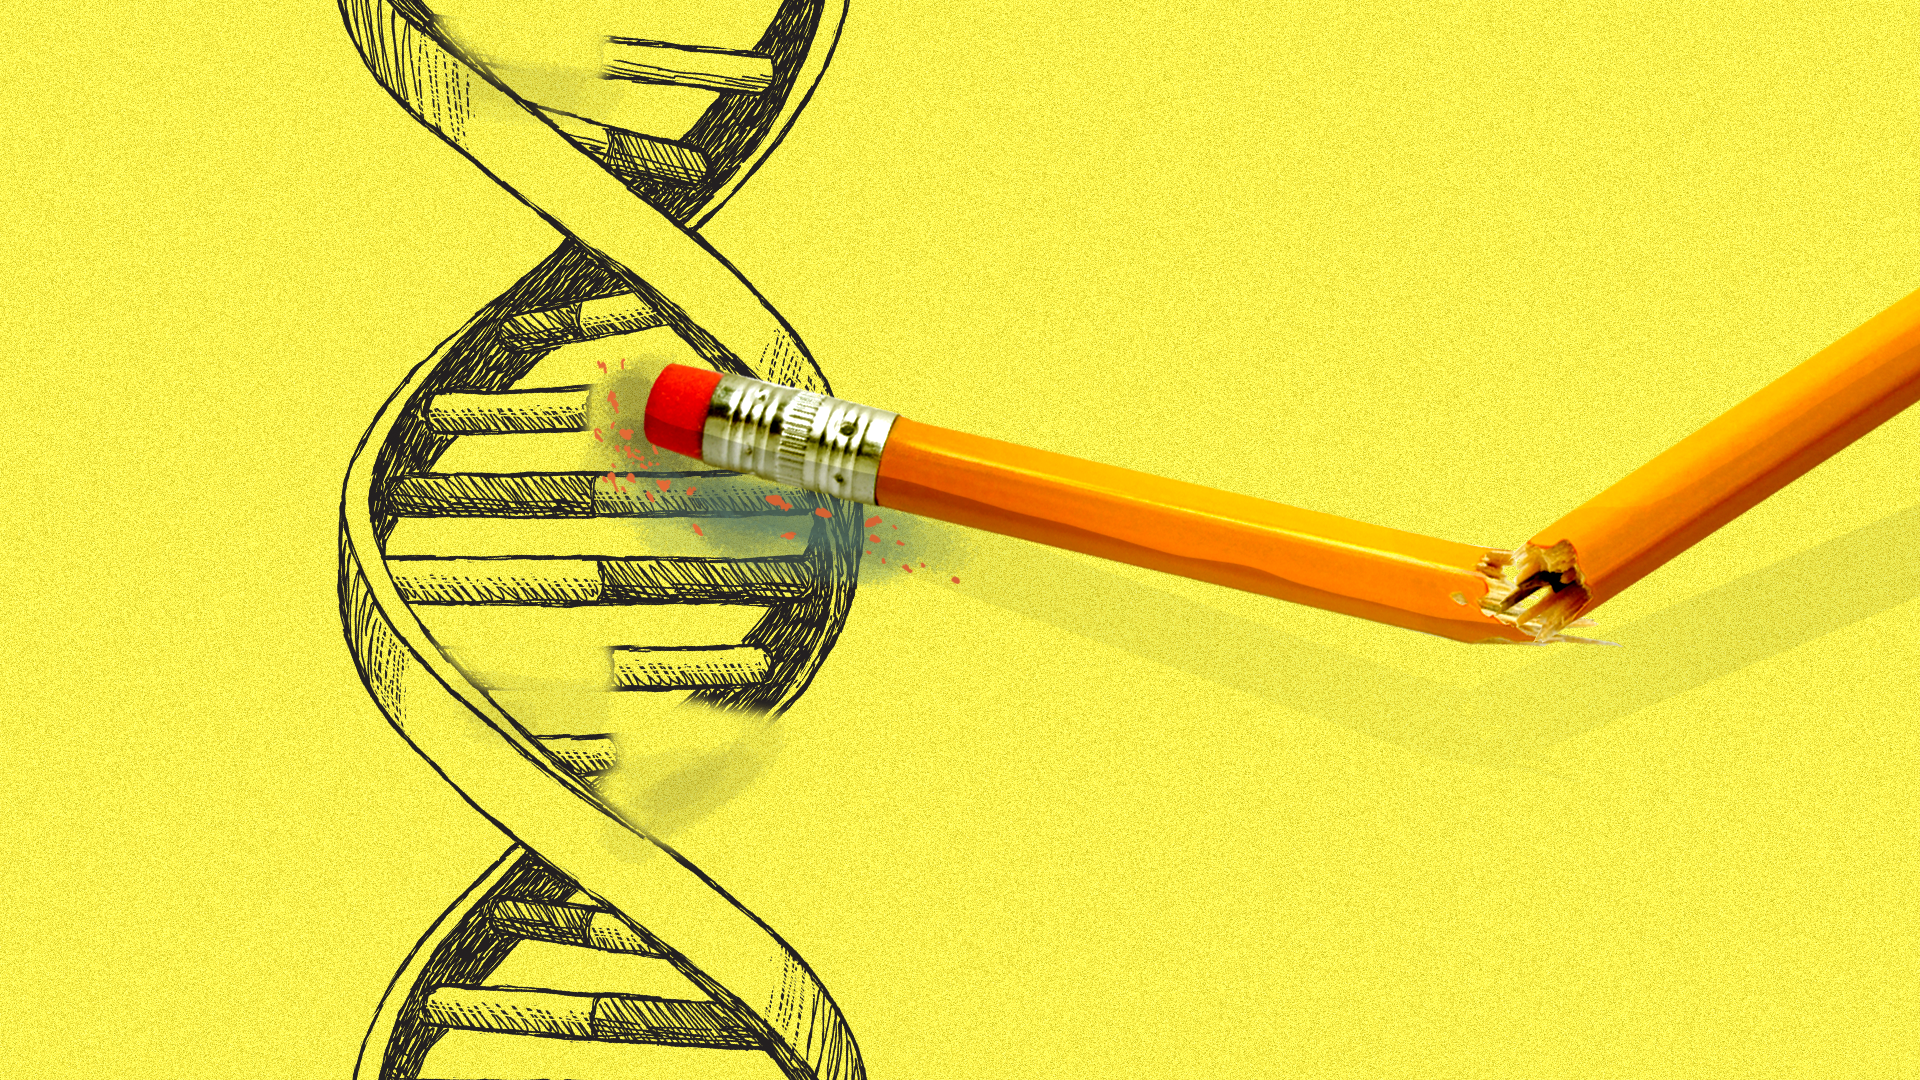 In this illustration, a broken pencil erases a drawing of a DNA double helix.